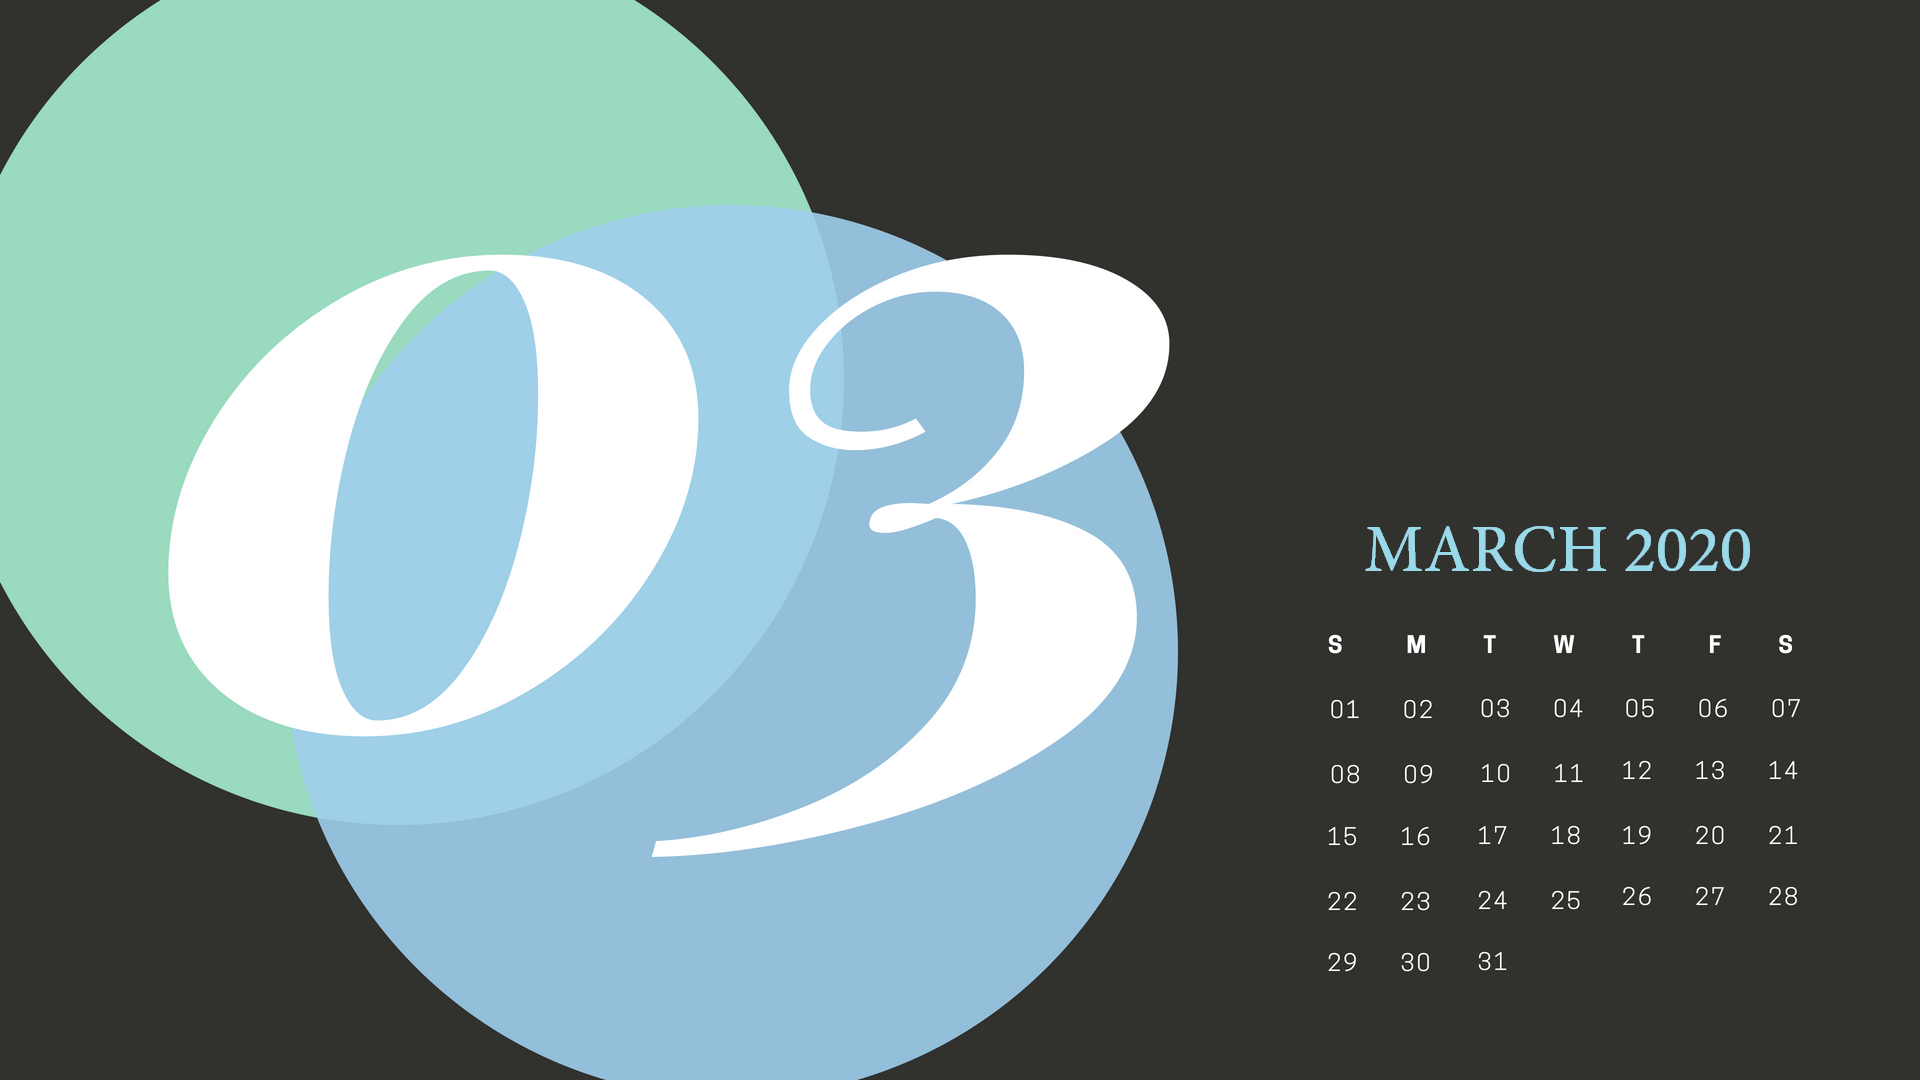 Cute March 2020 Calendar Wallpaper School calendar Calendar 1920x1080